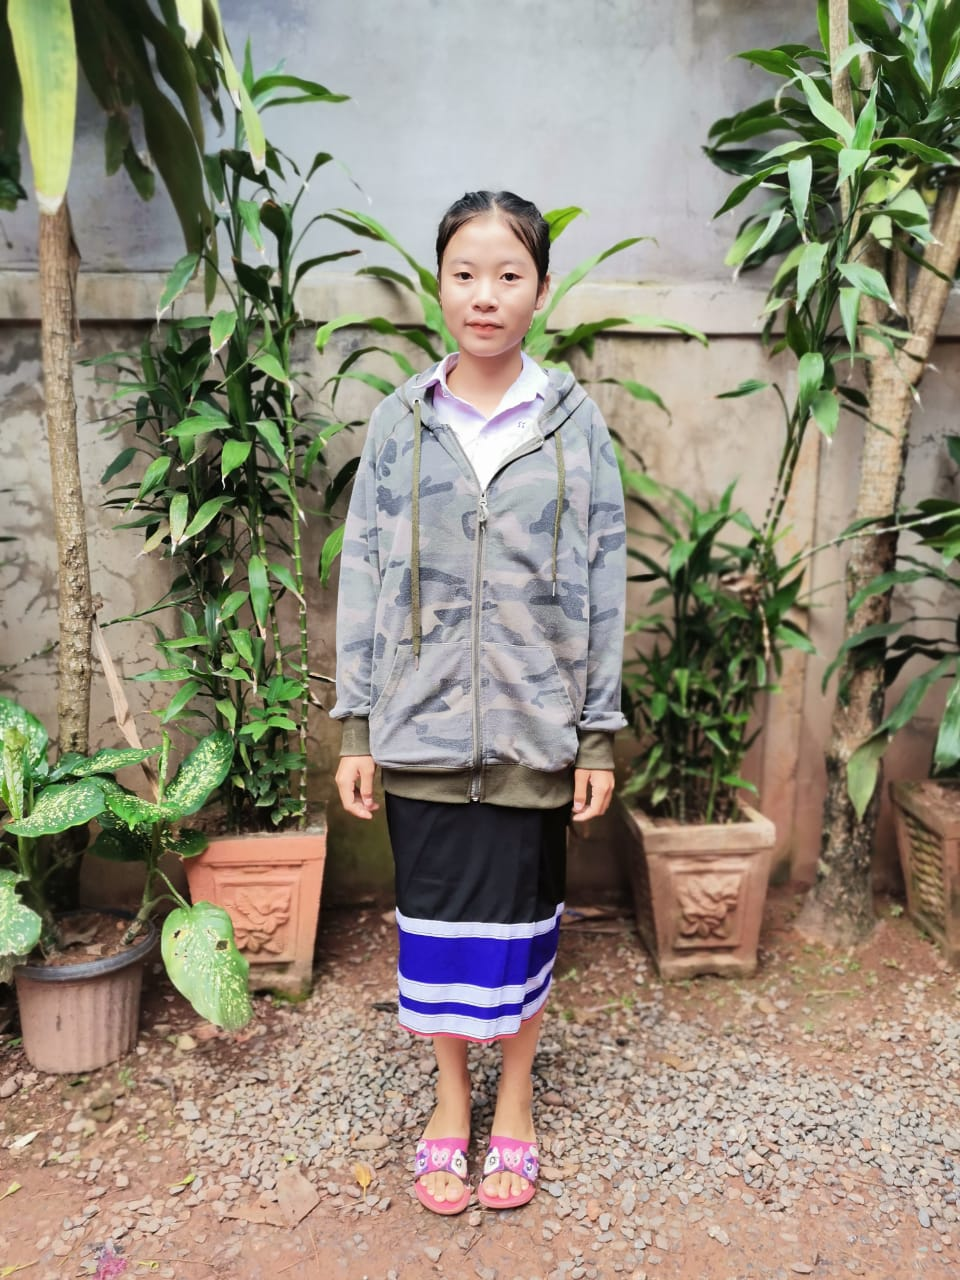 LAOS | DEC. 09, 2020 — Laotian Teenager Kicked Out